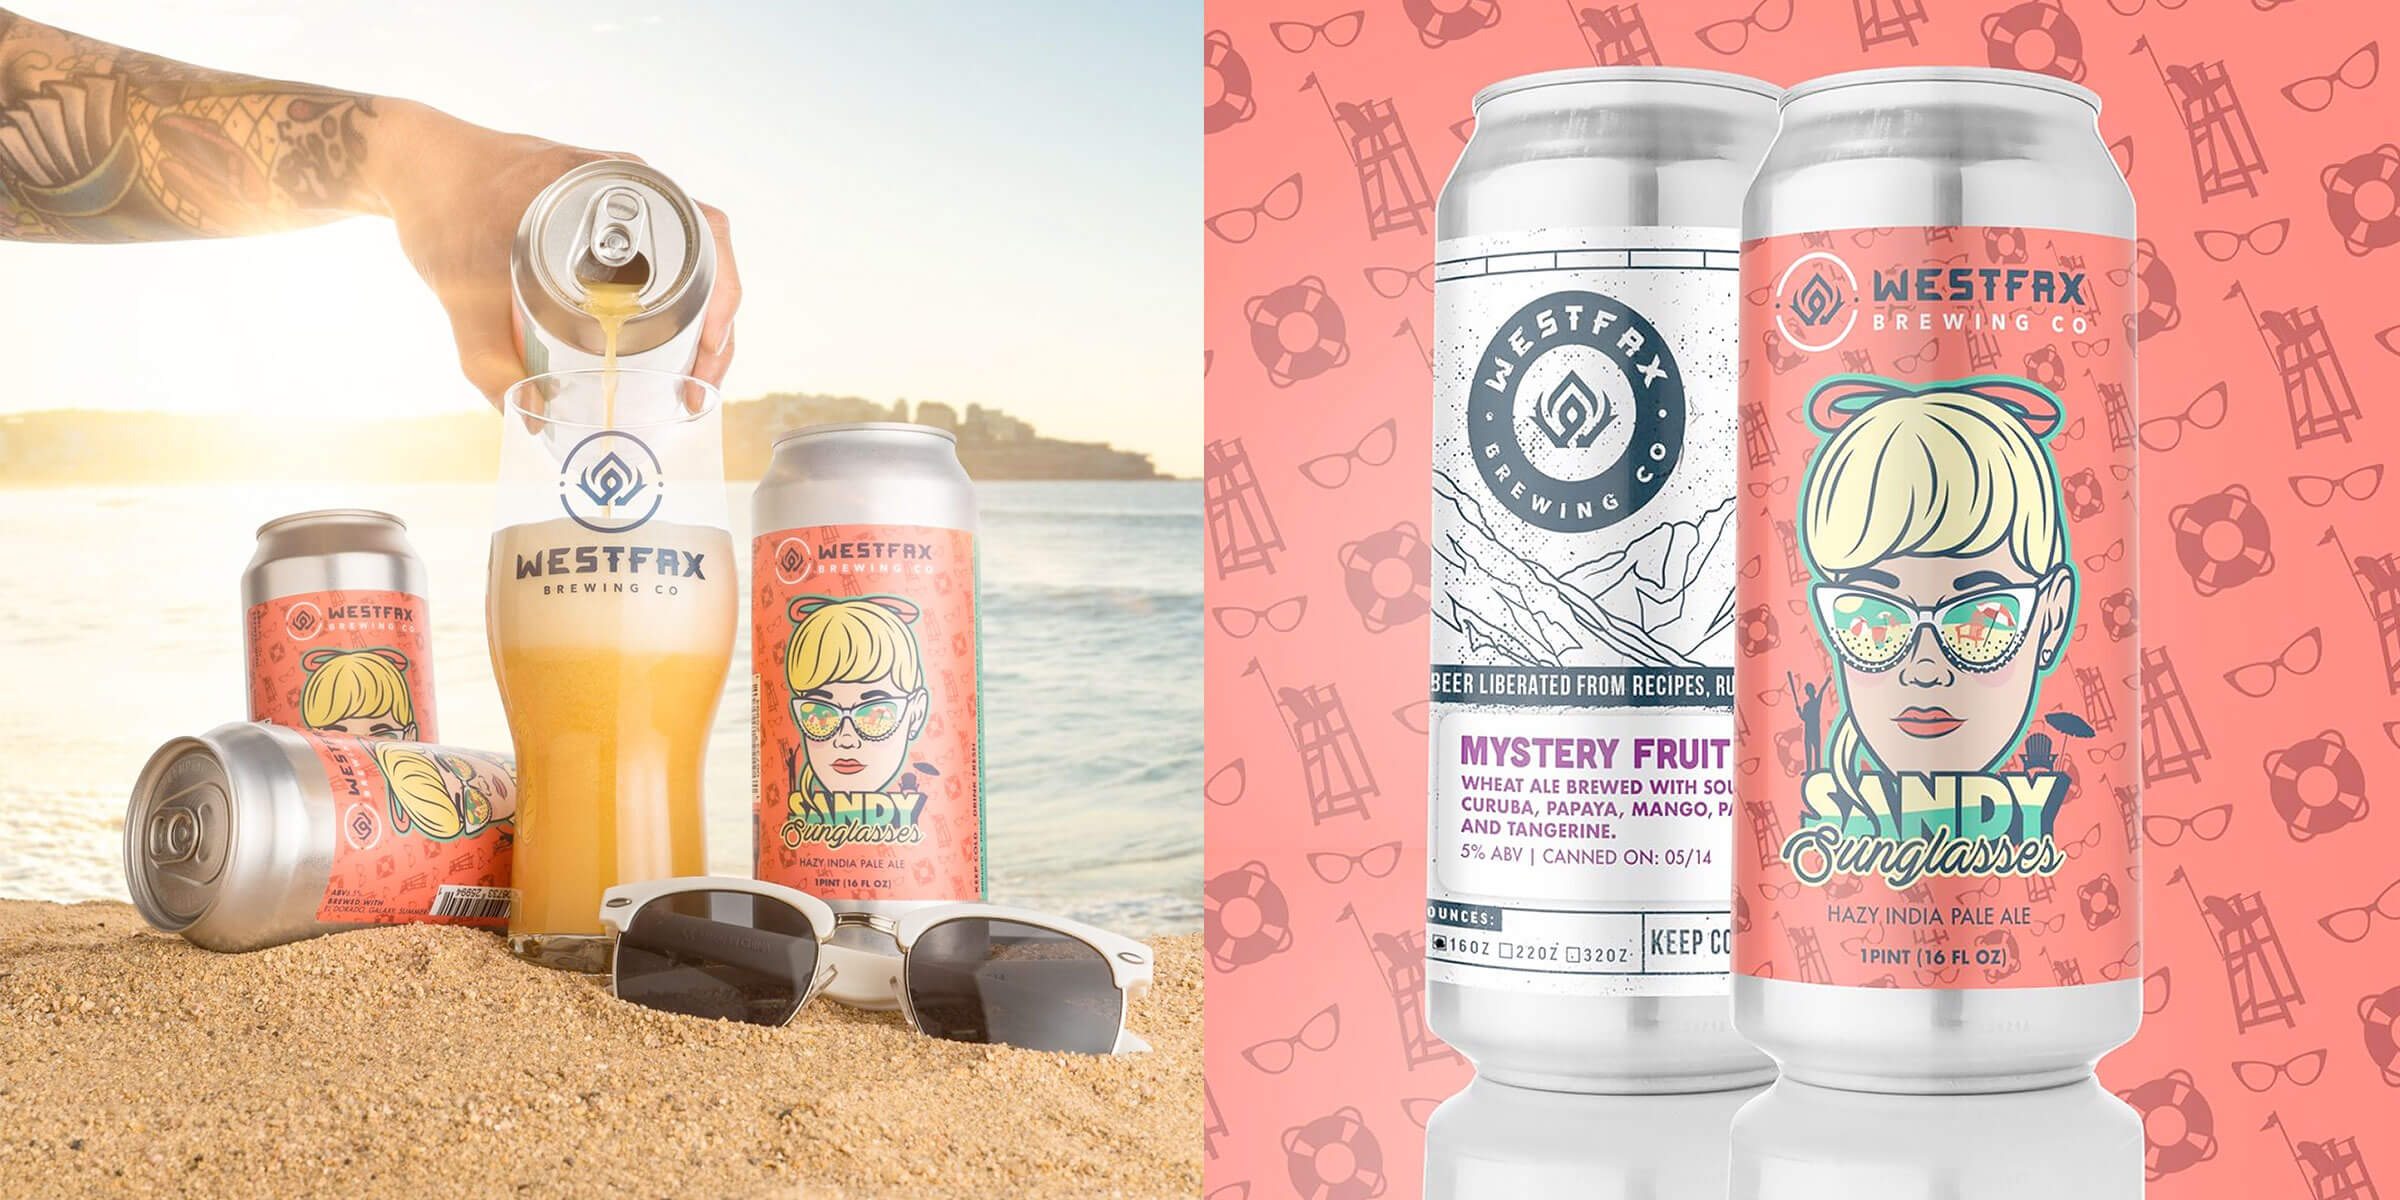 """Westfax Brewing Company released their latest Hazy IPA named """"Sandy Sunglasses"""", brewed to be the little sister beer to their """"Foggy Goggles"""" Hazy IPA."""